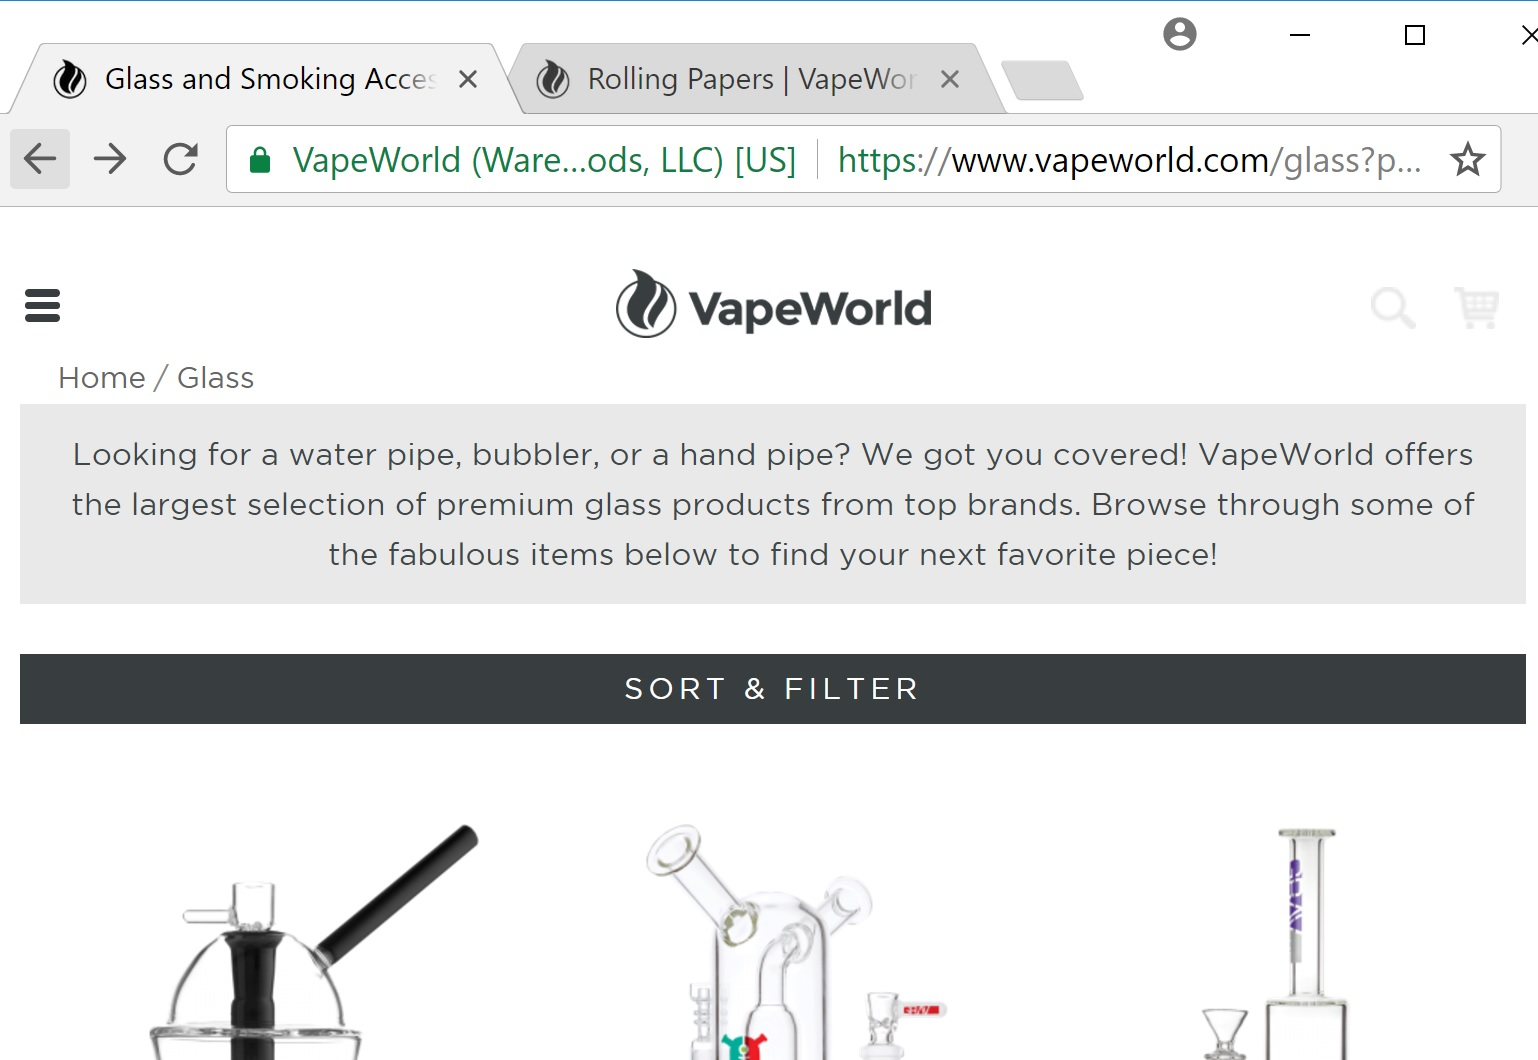 Glass Smoking Devices On Vape World